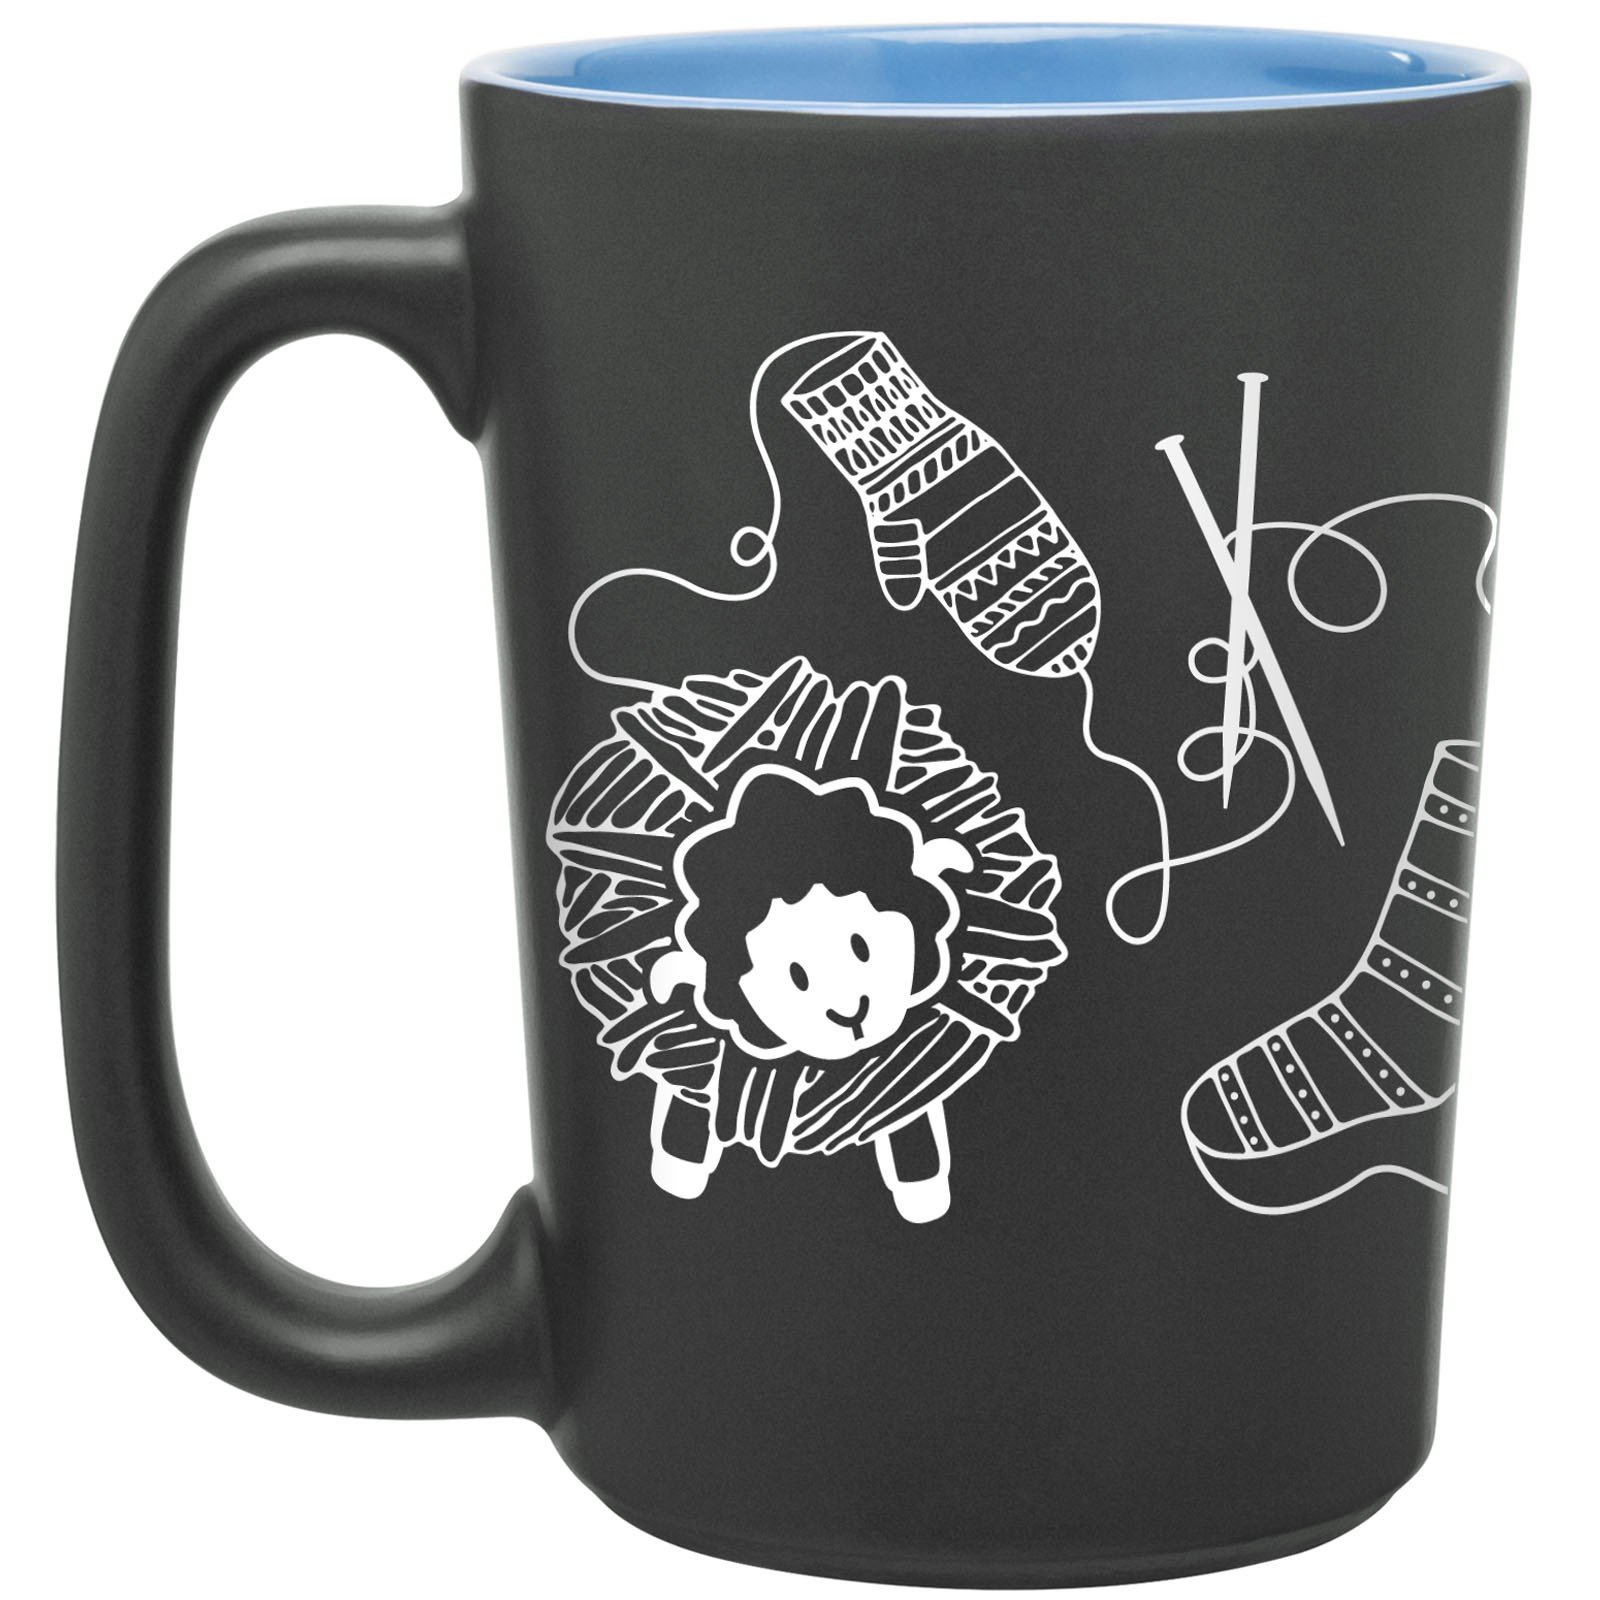 Knitting Scribbles Mug